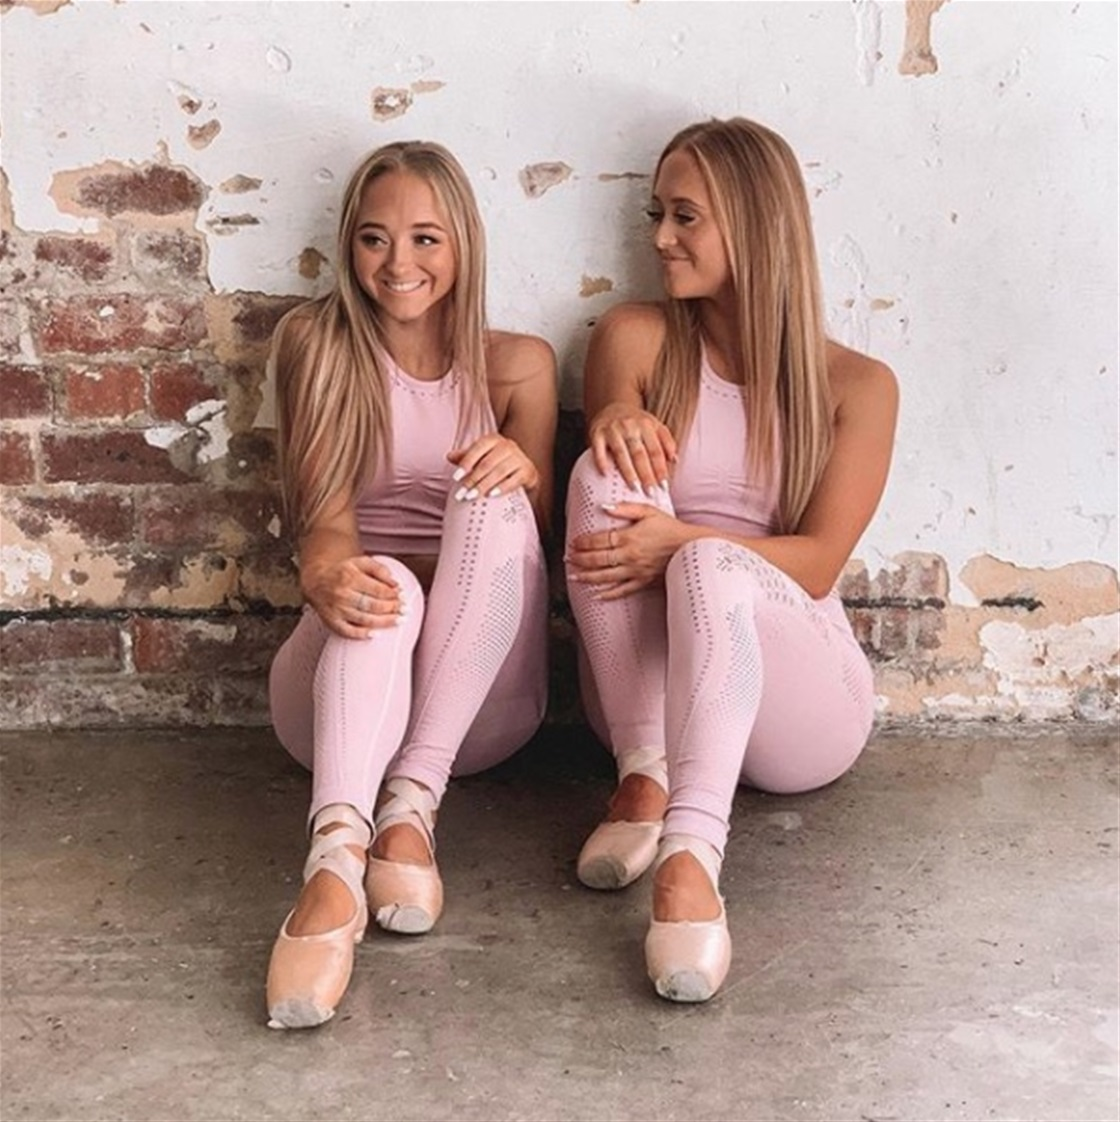 TG's Rosie chats to the Rybka Twins